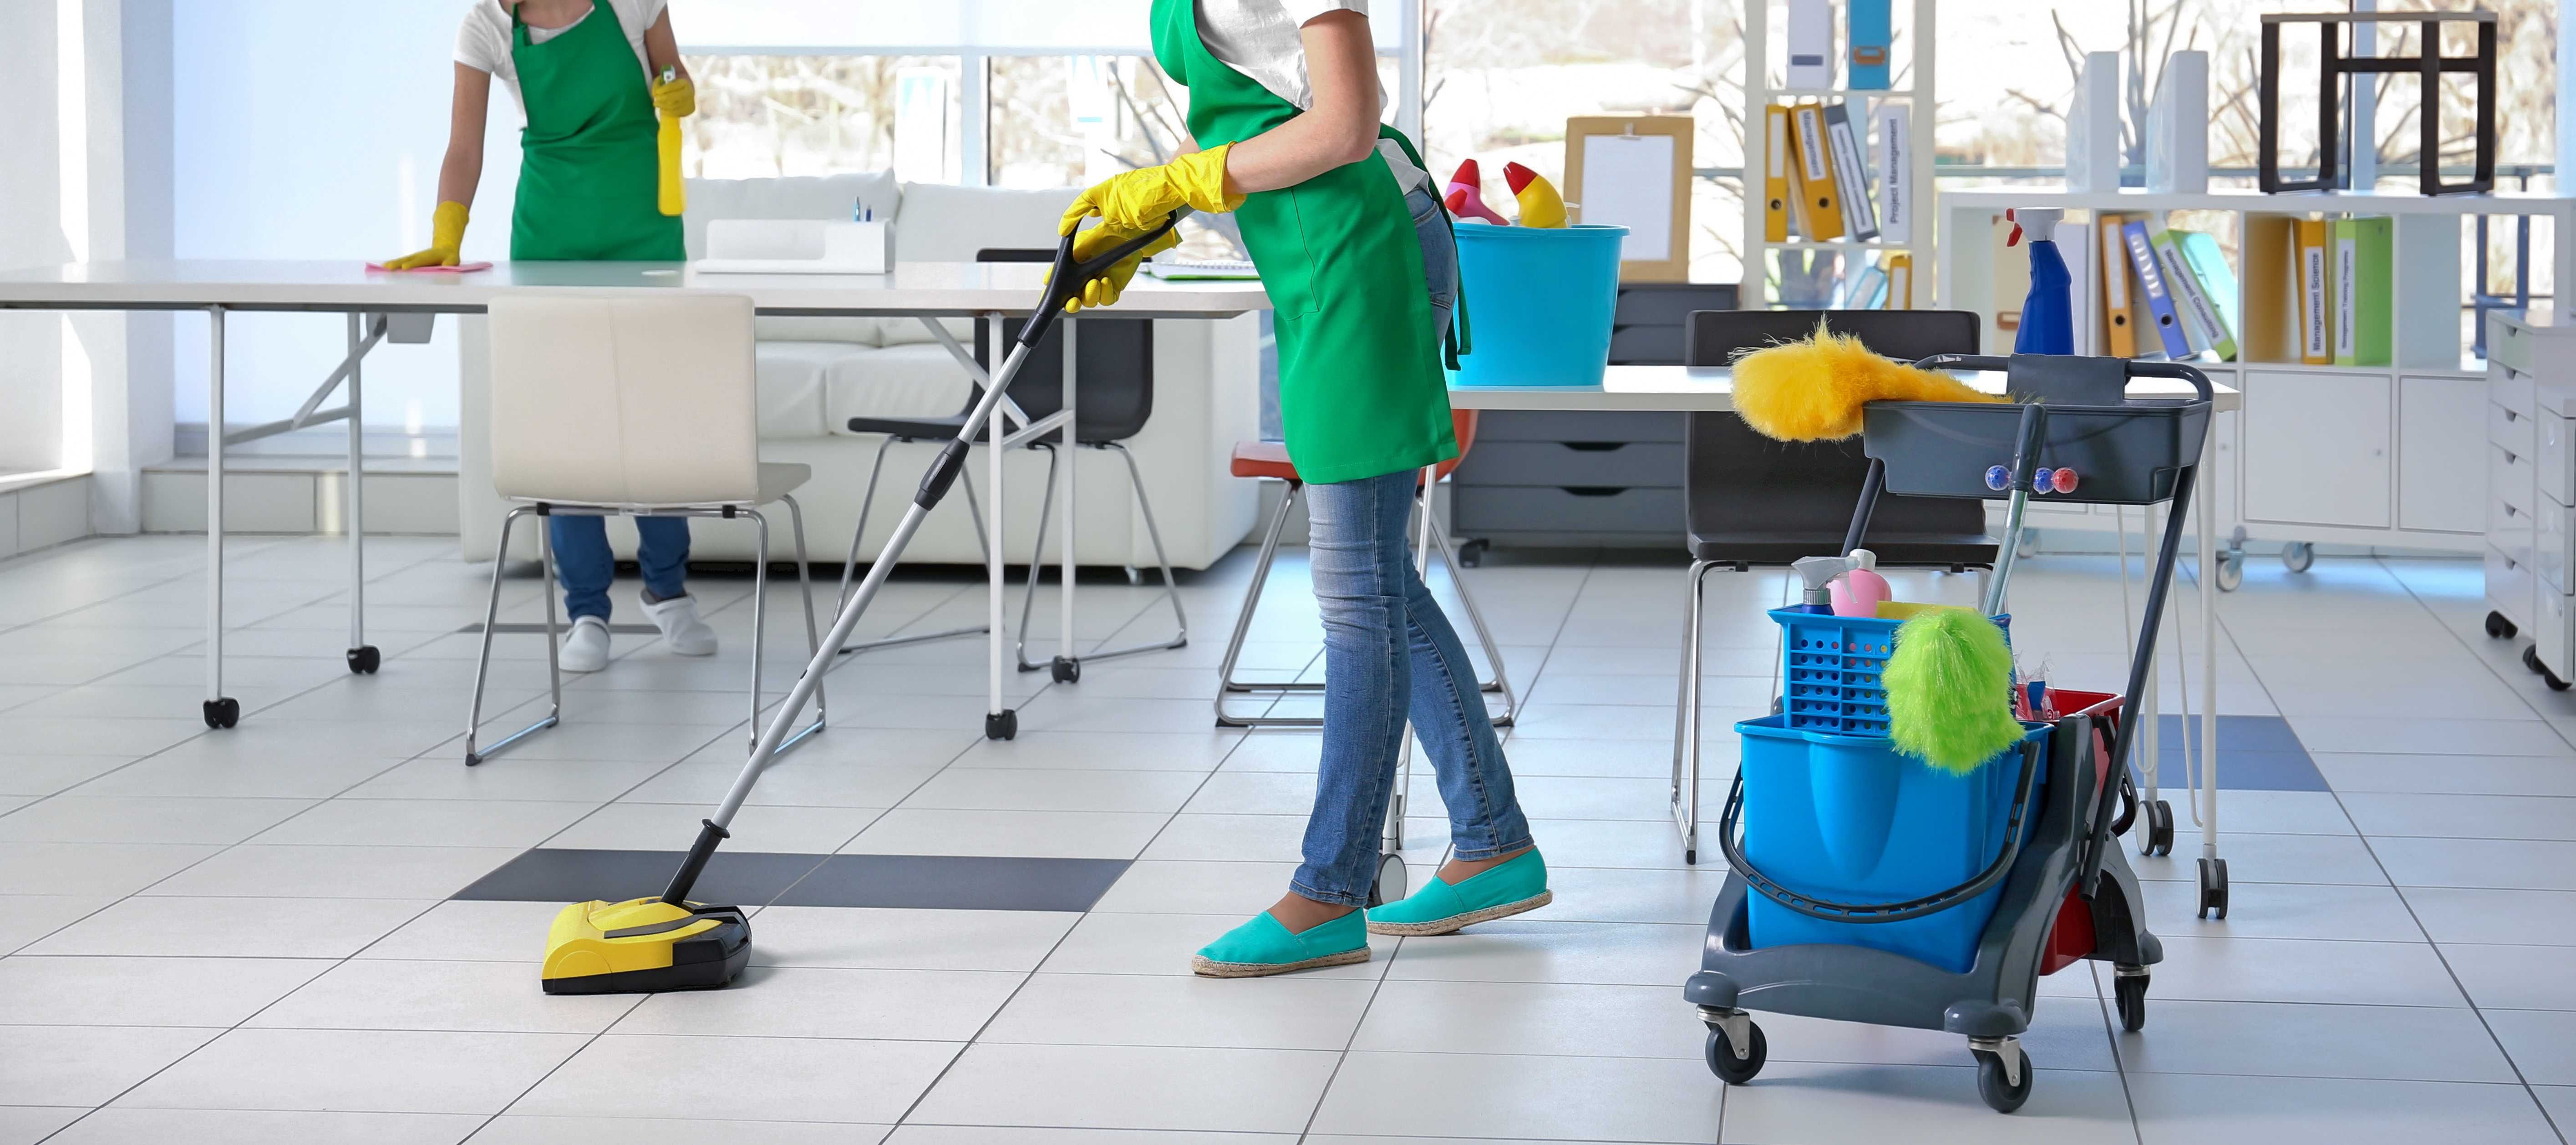 Choosing a Commercial Cleaning Company in Springfield